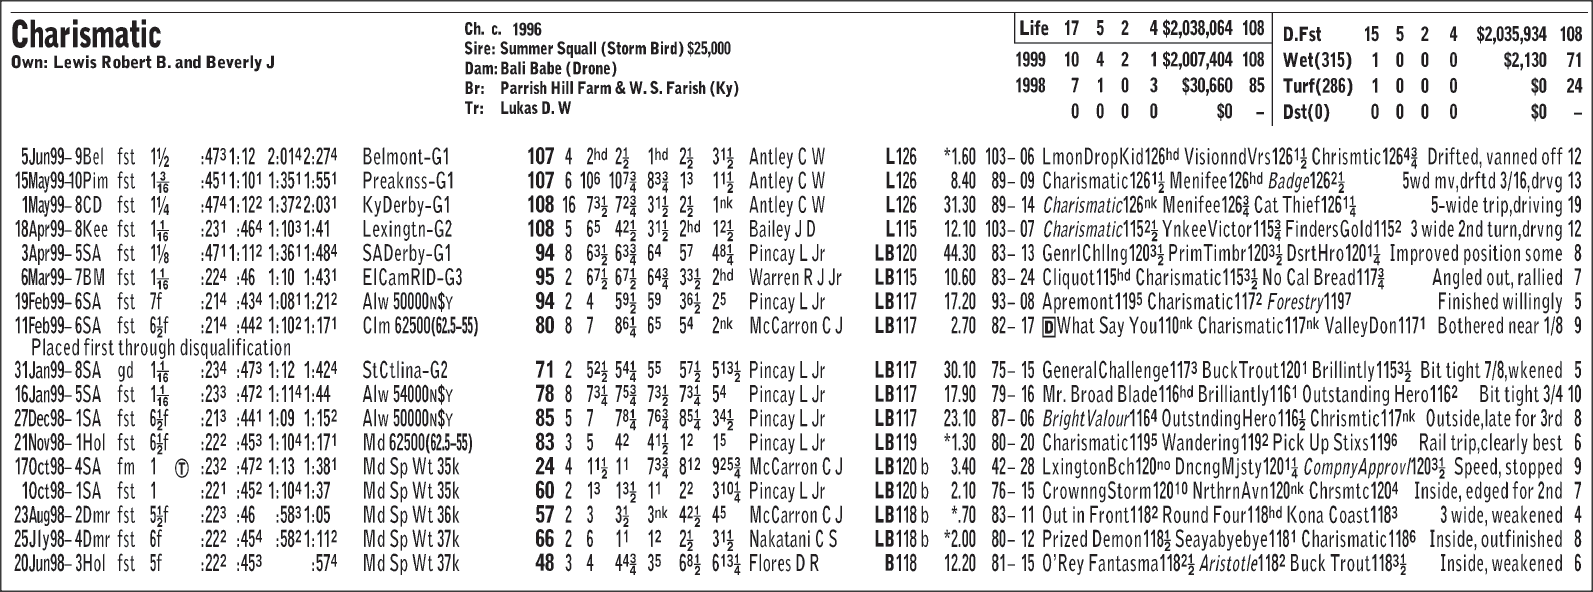 Charismatic, 1999 Horse of the Year, dies unexpectedly at 21 ...